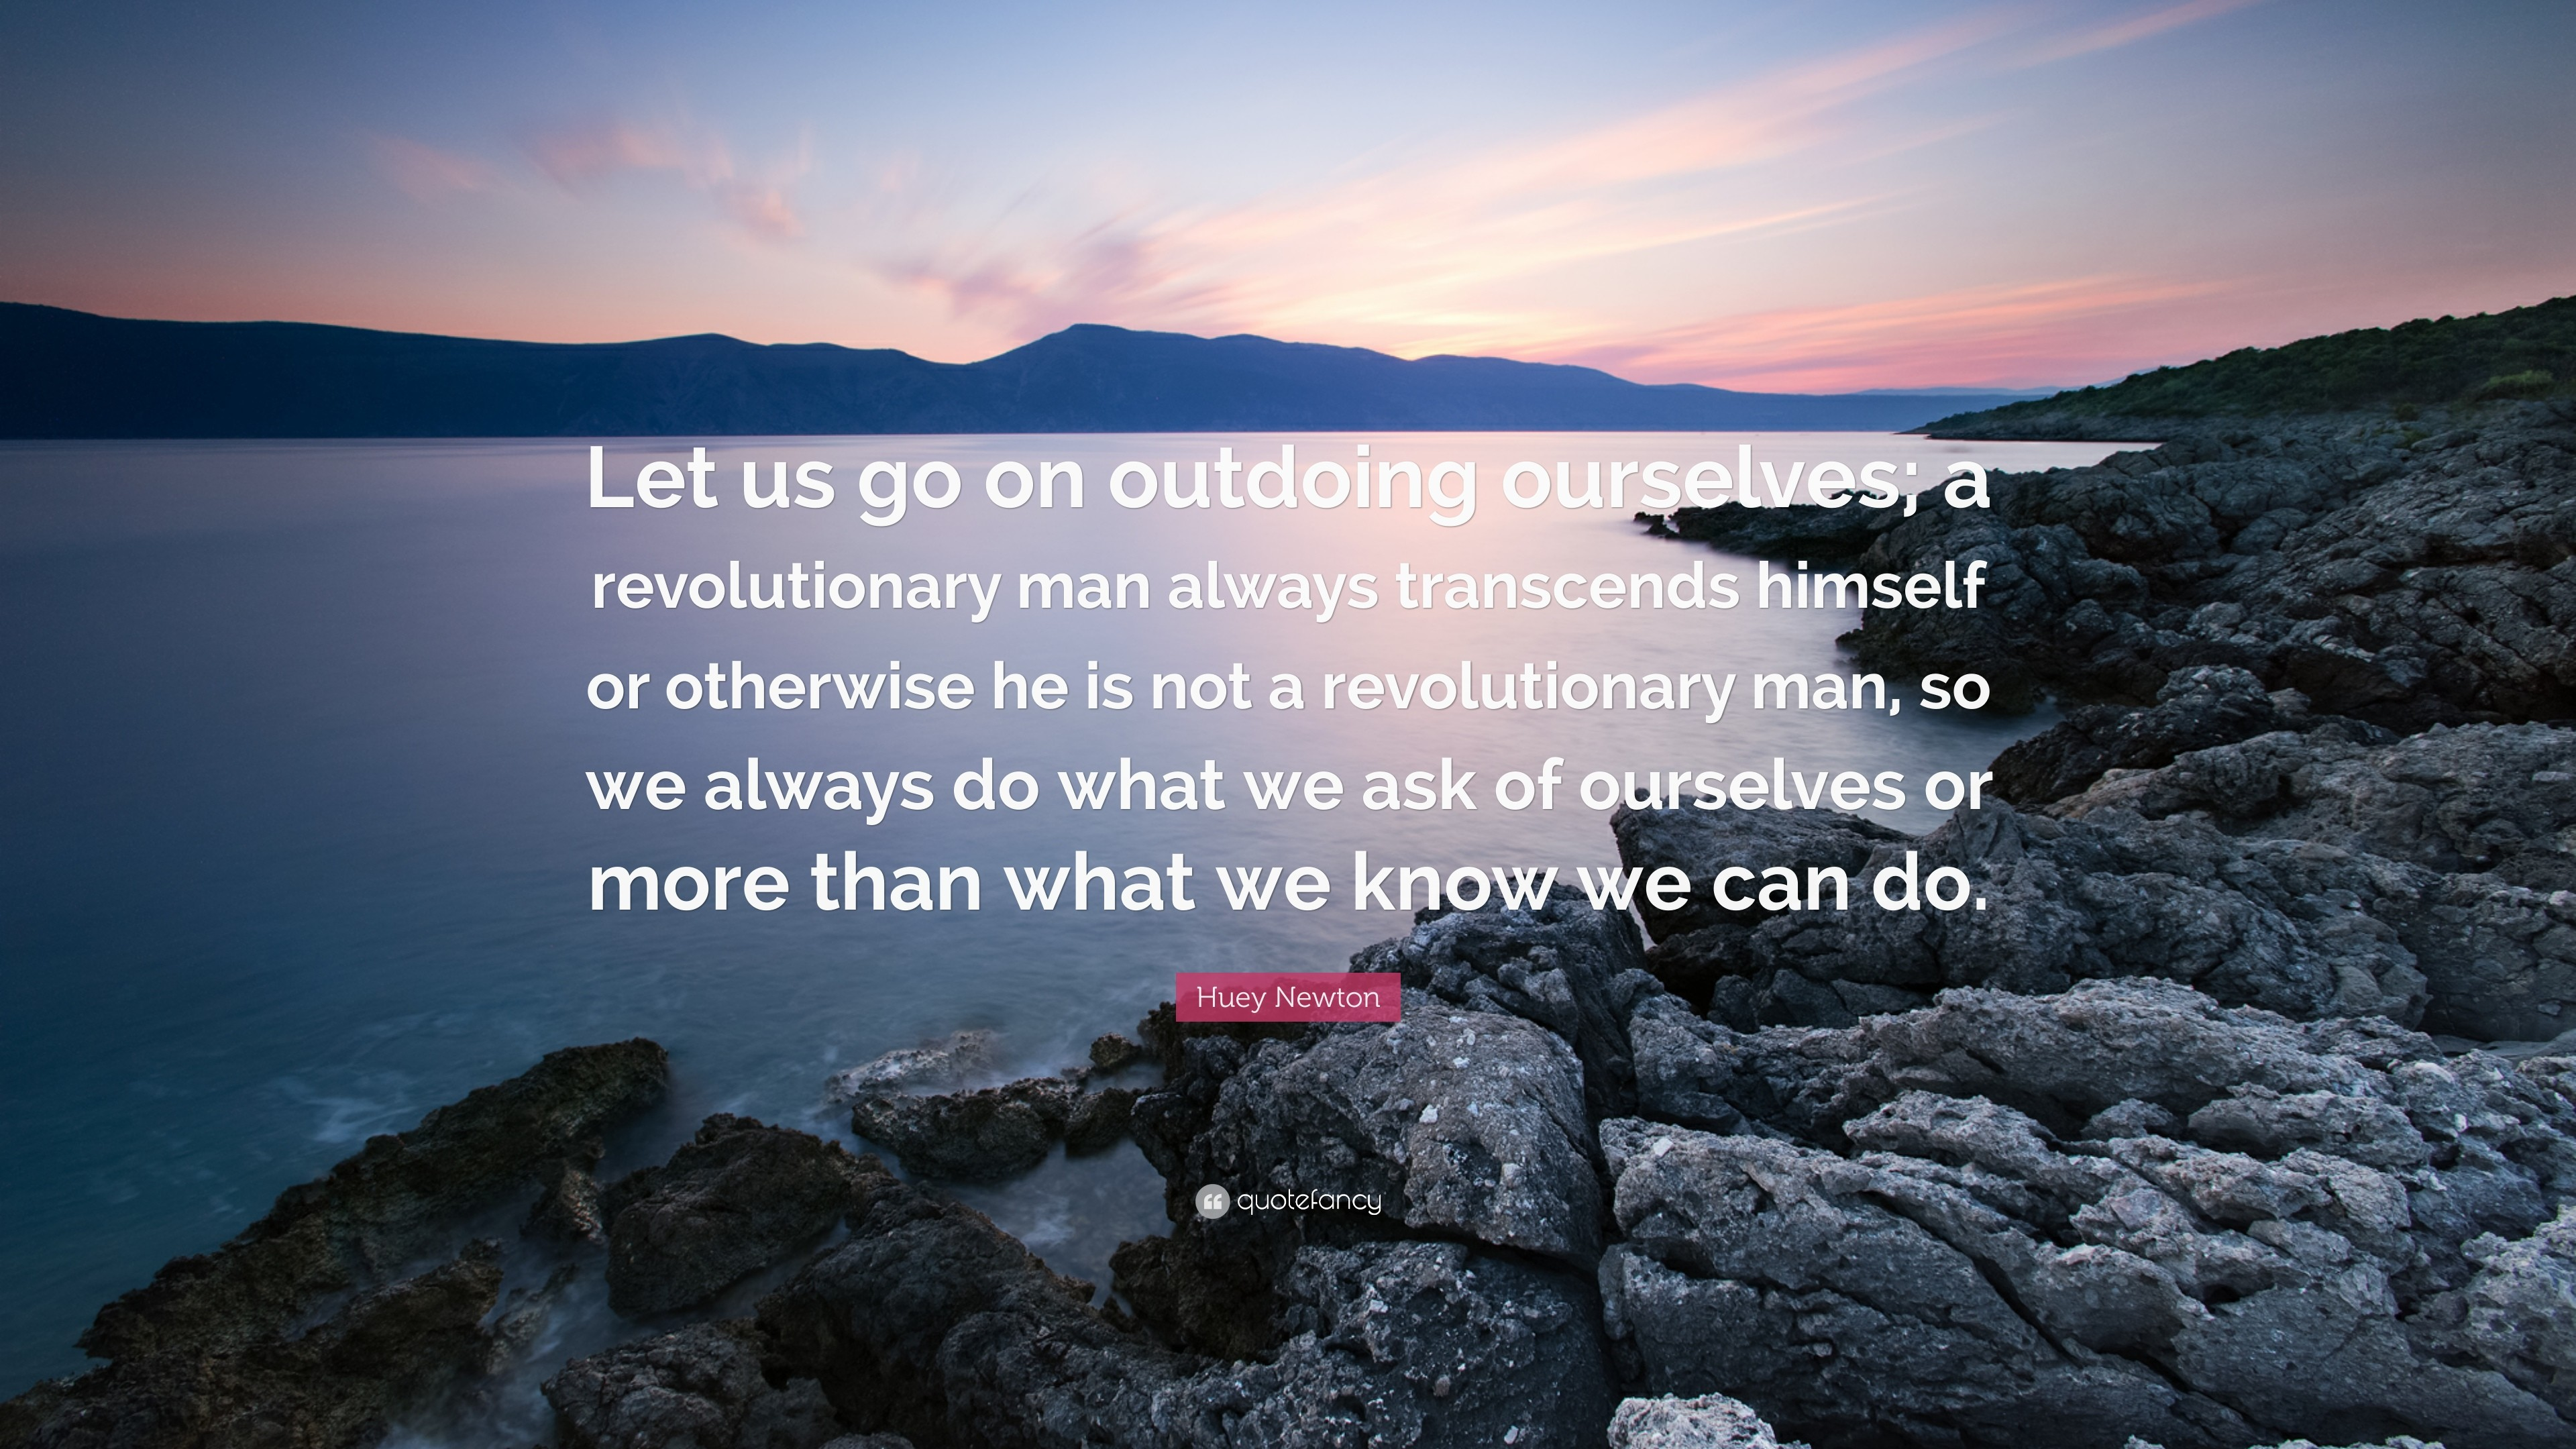 Res: 3840x2160, Huey Newton E Let Us Go On Outdoing Ourselves A Revolutionary